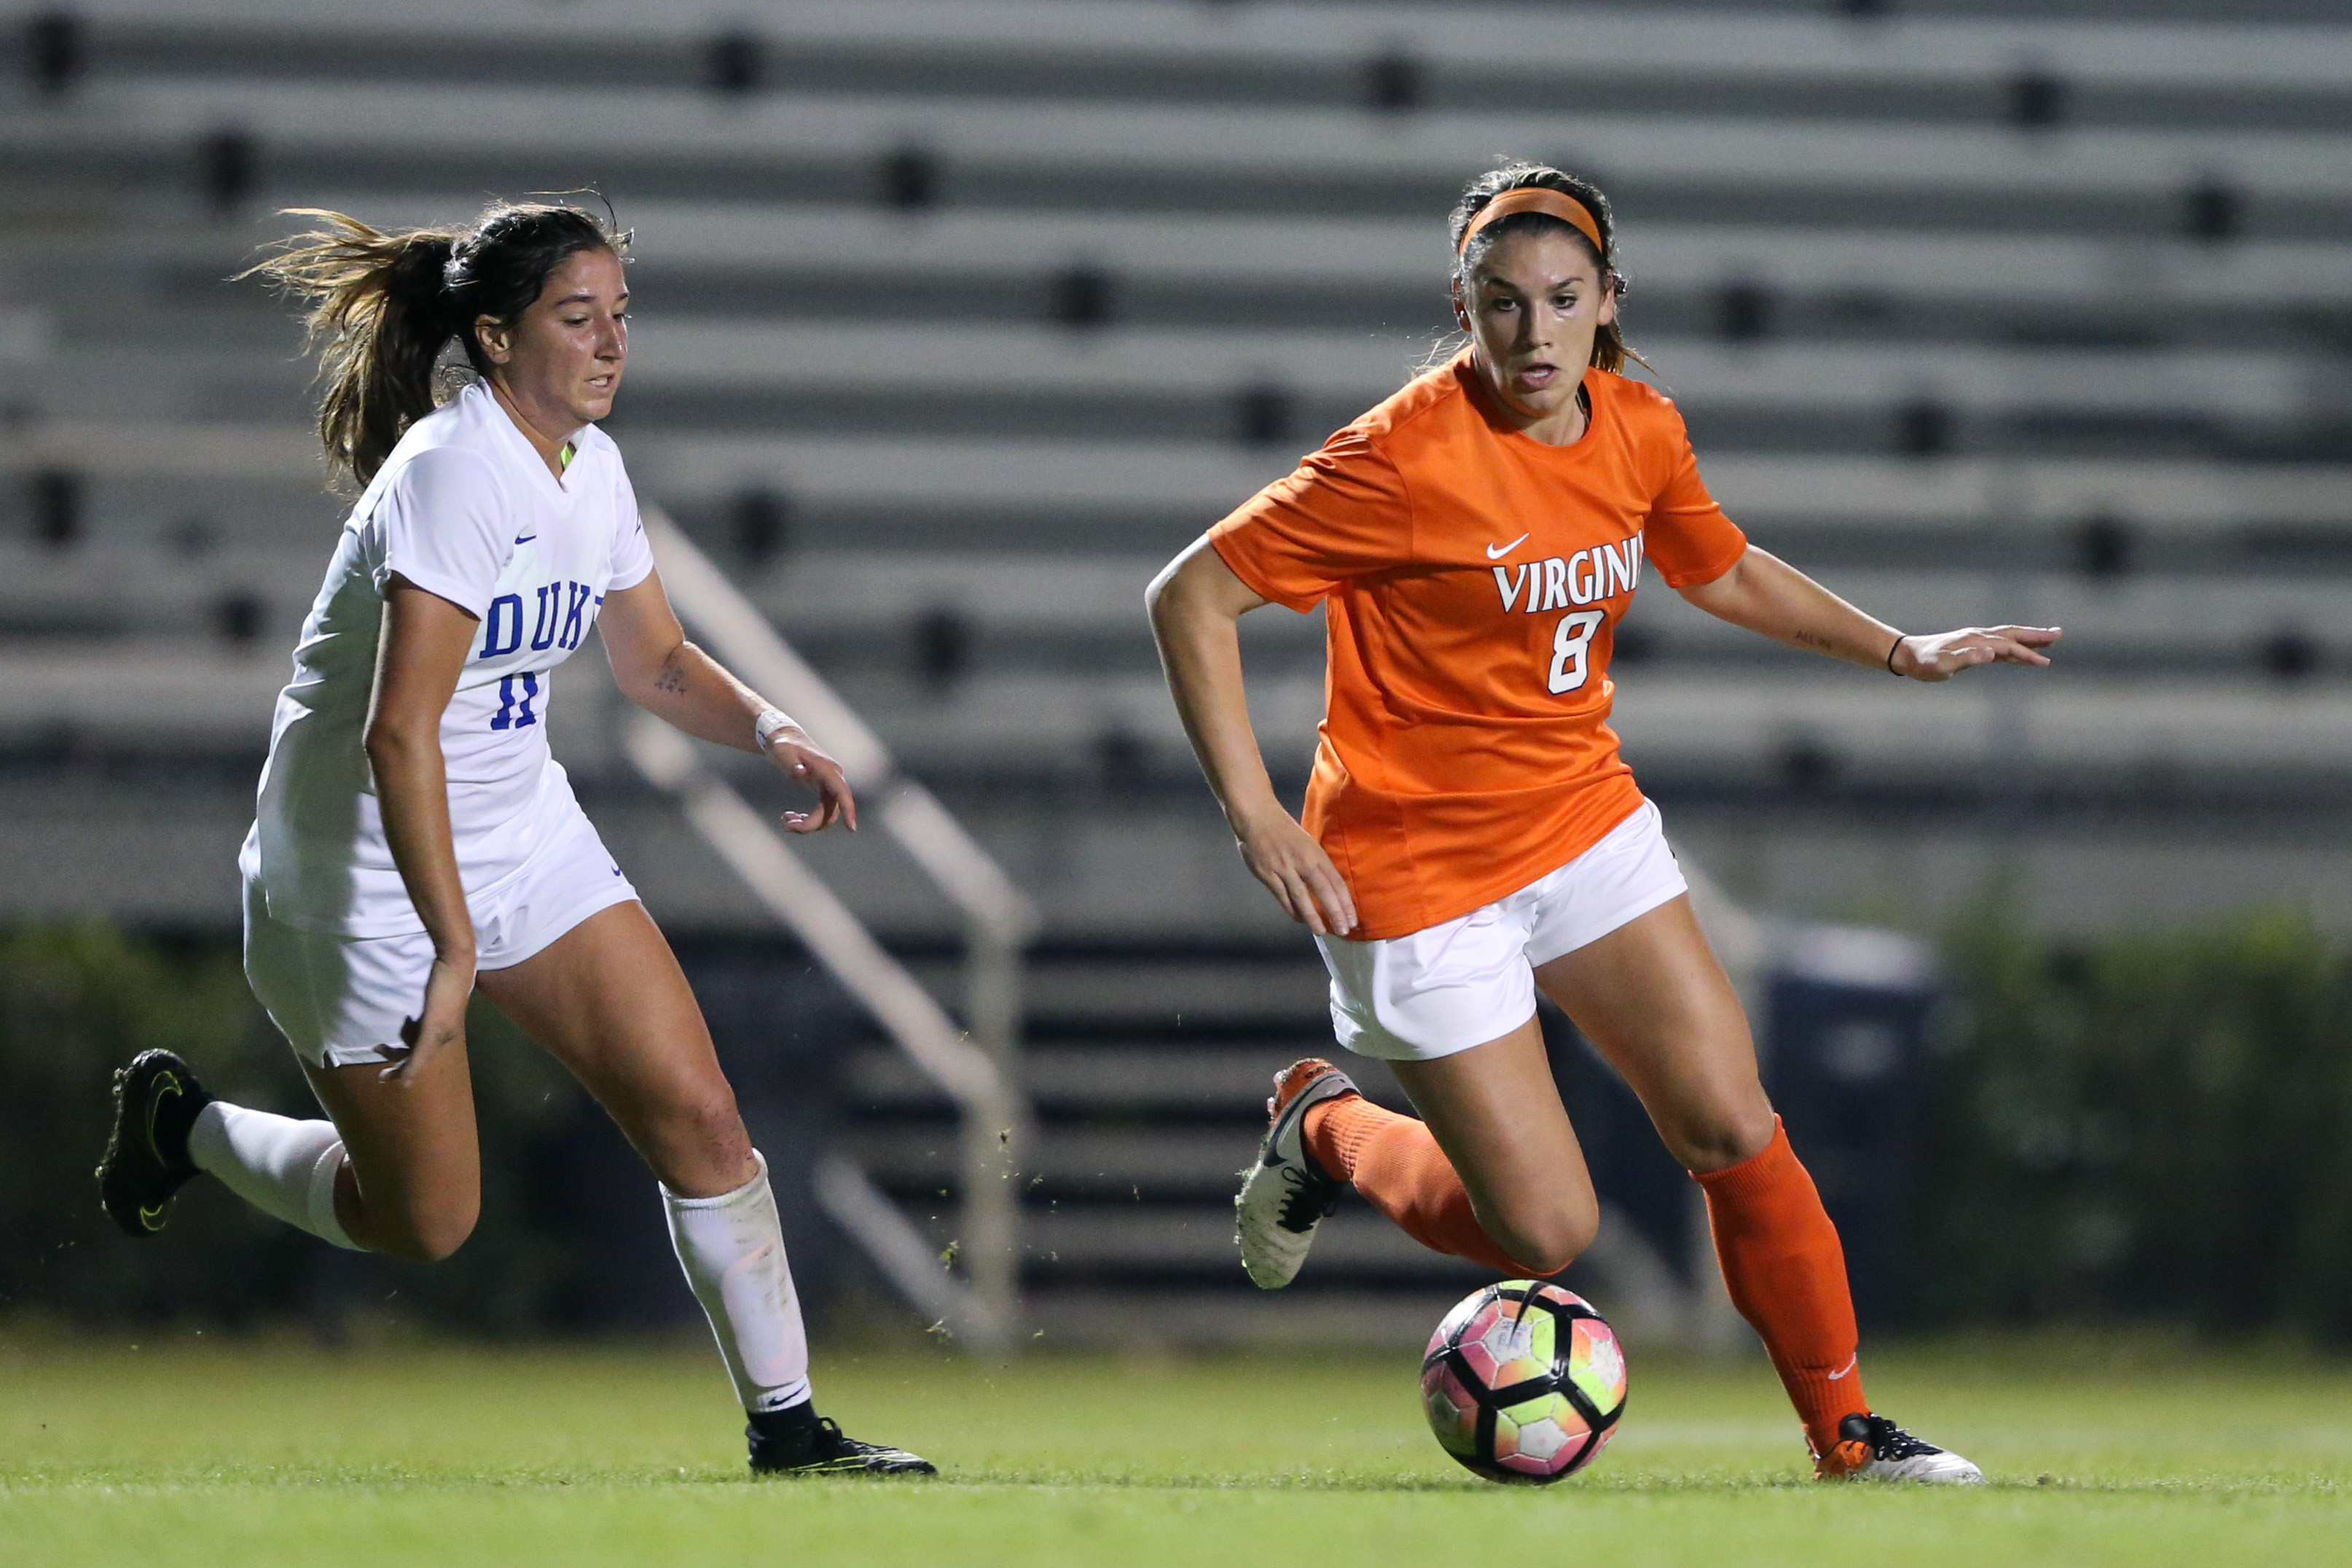 NCAA SOCCER: OCT 15 Women's - Virginia at Duke